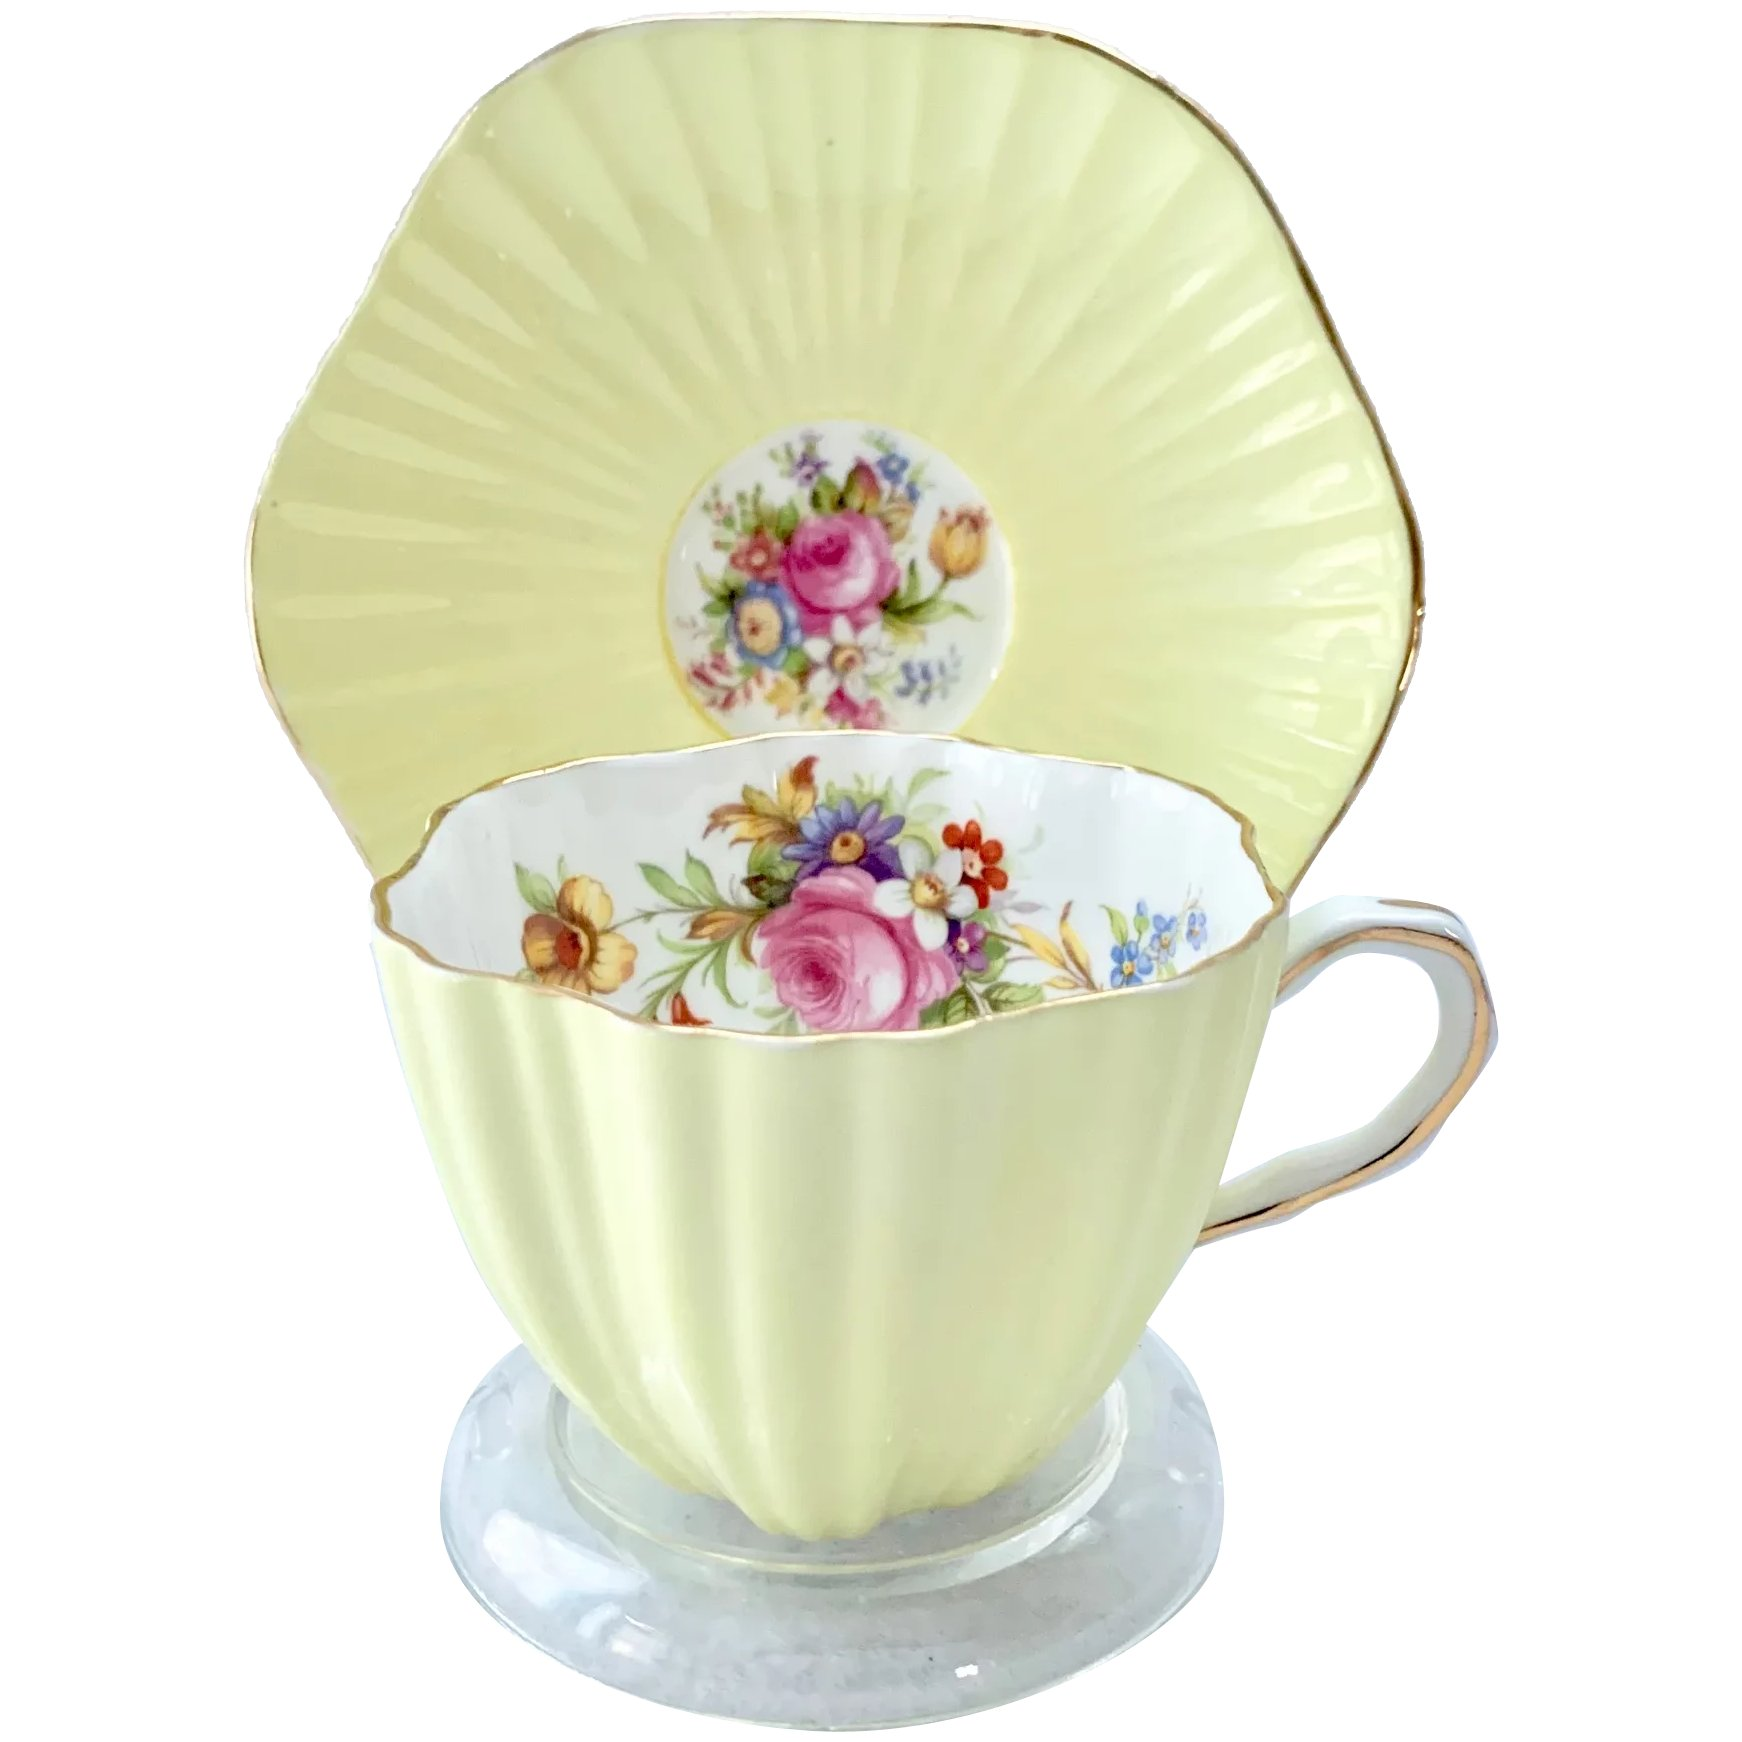 Foley Yellow Fluted Teacup And Saucer With Rose And Tulip Design Maggie Belle S Memories Ruby Lane